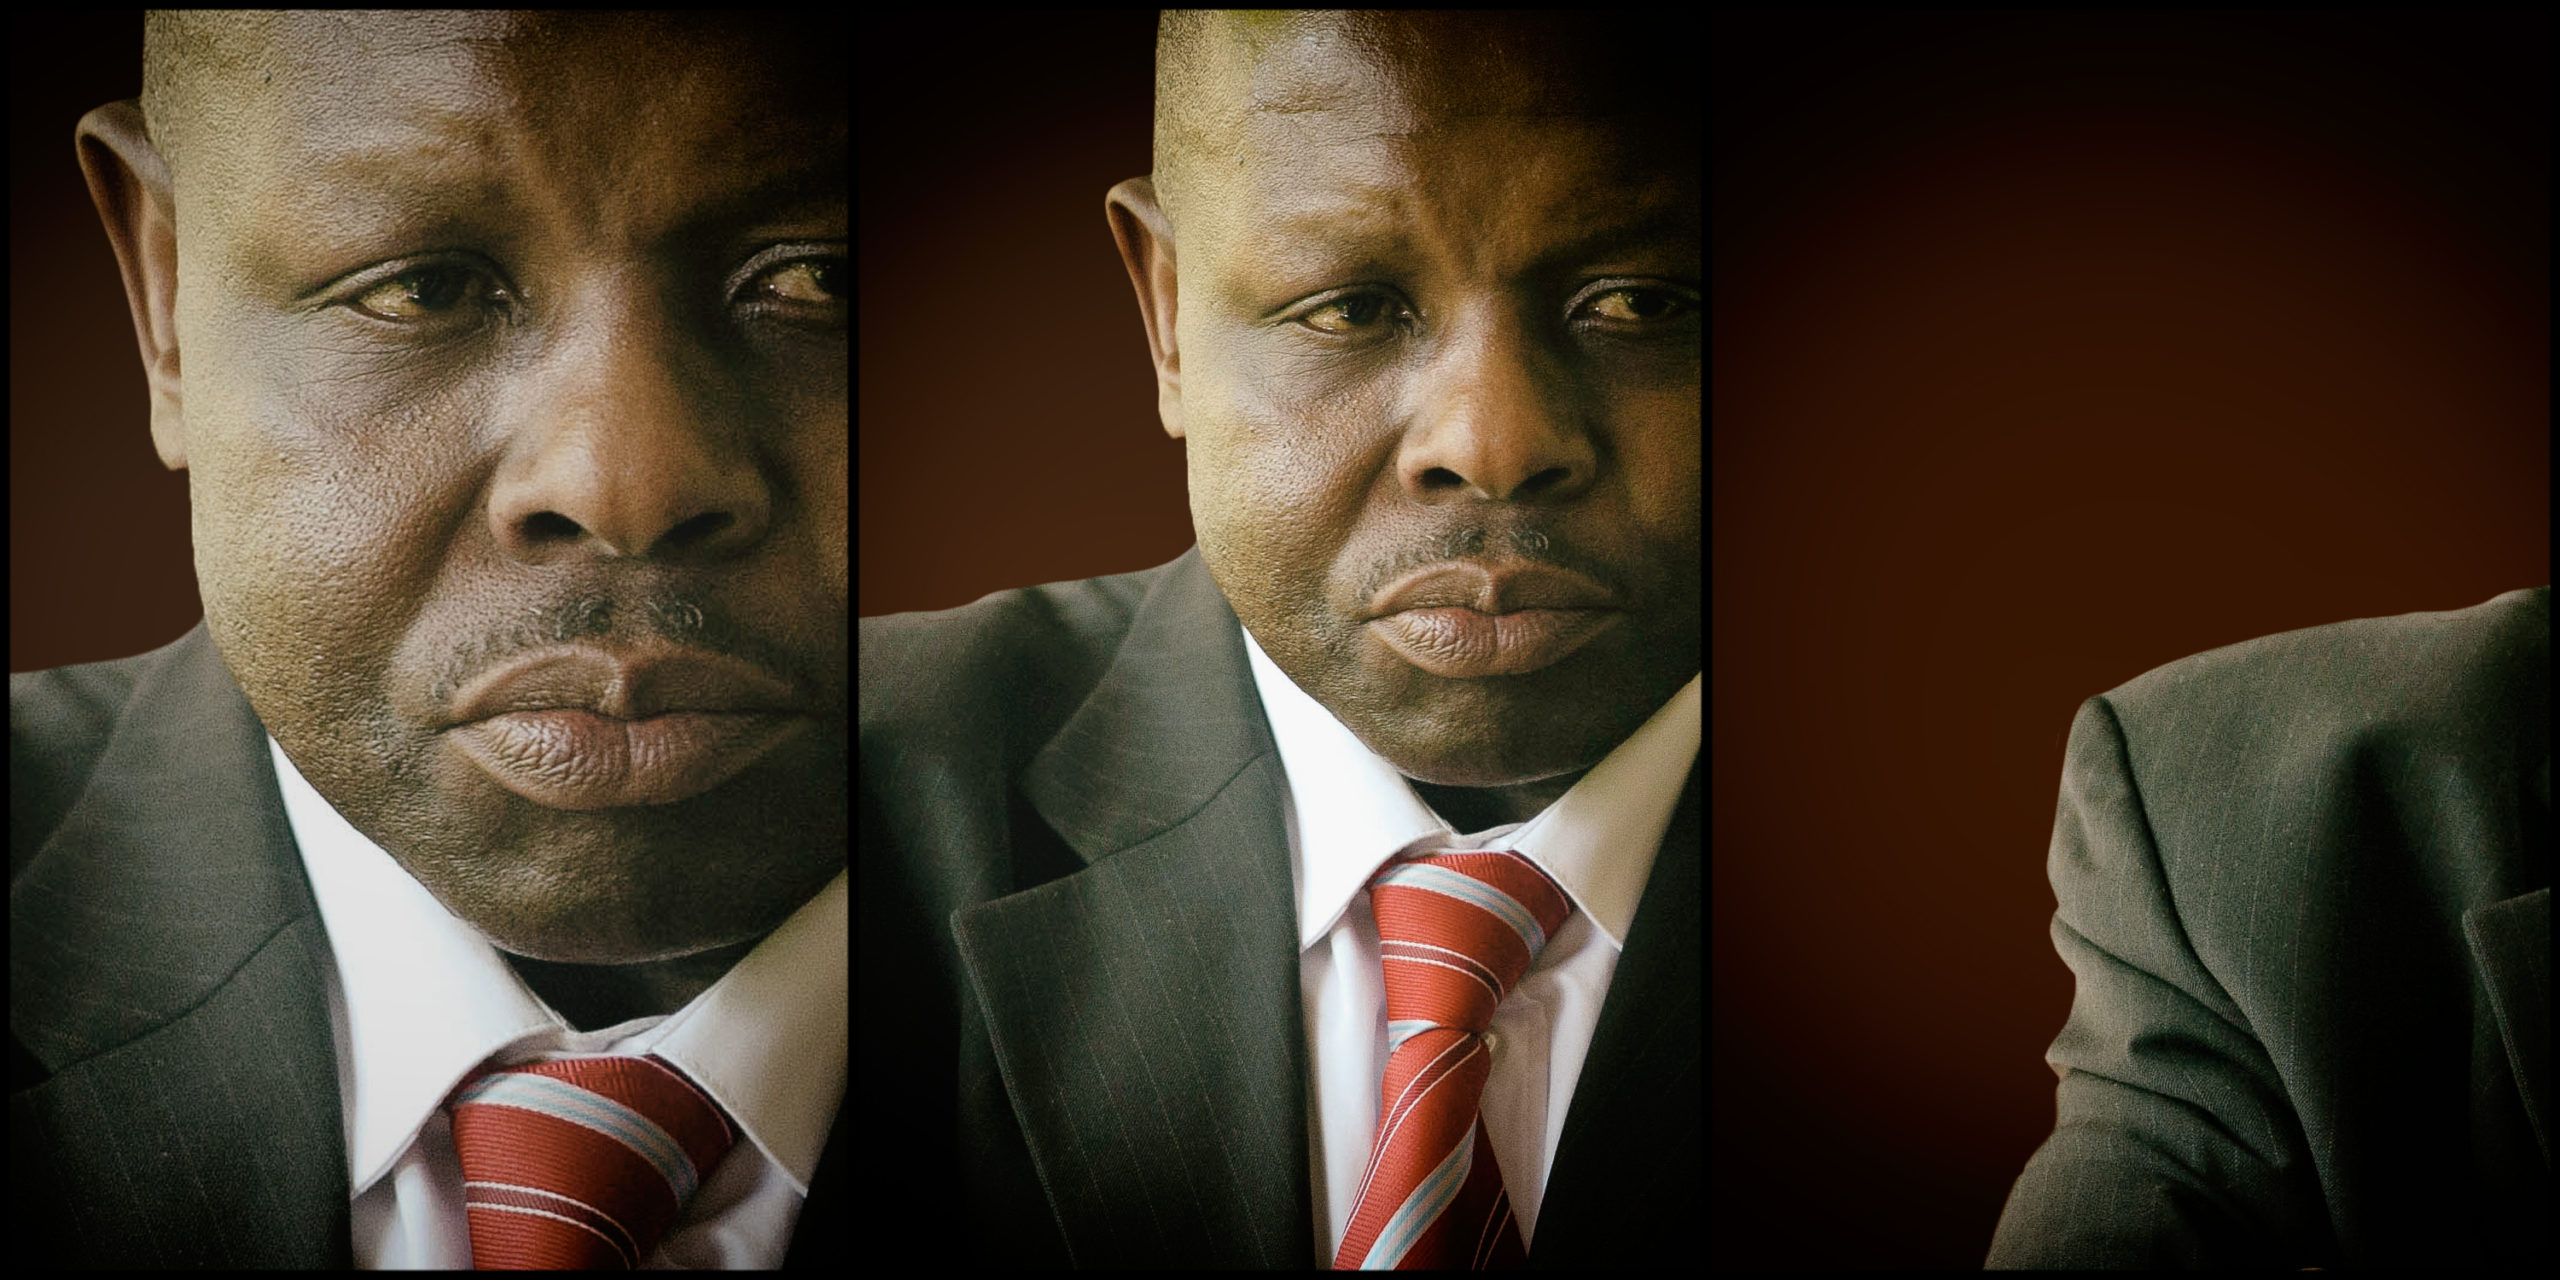 Hlophe faces hot seat with suspension and impeachment p... - Daily Maverick